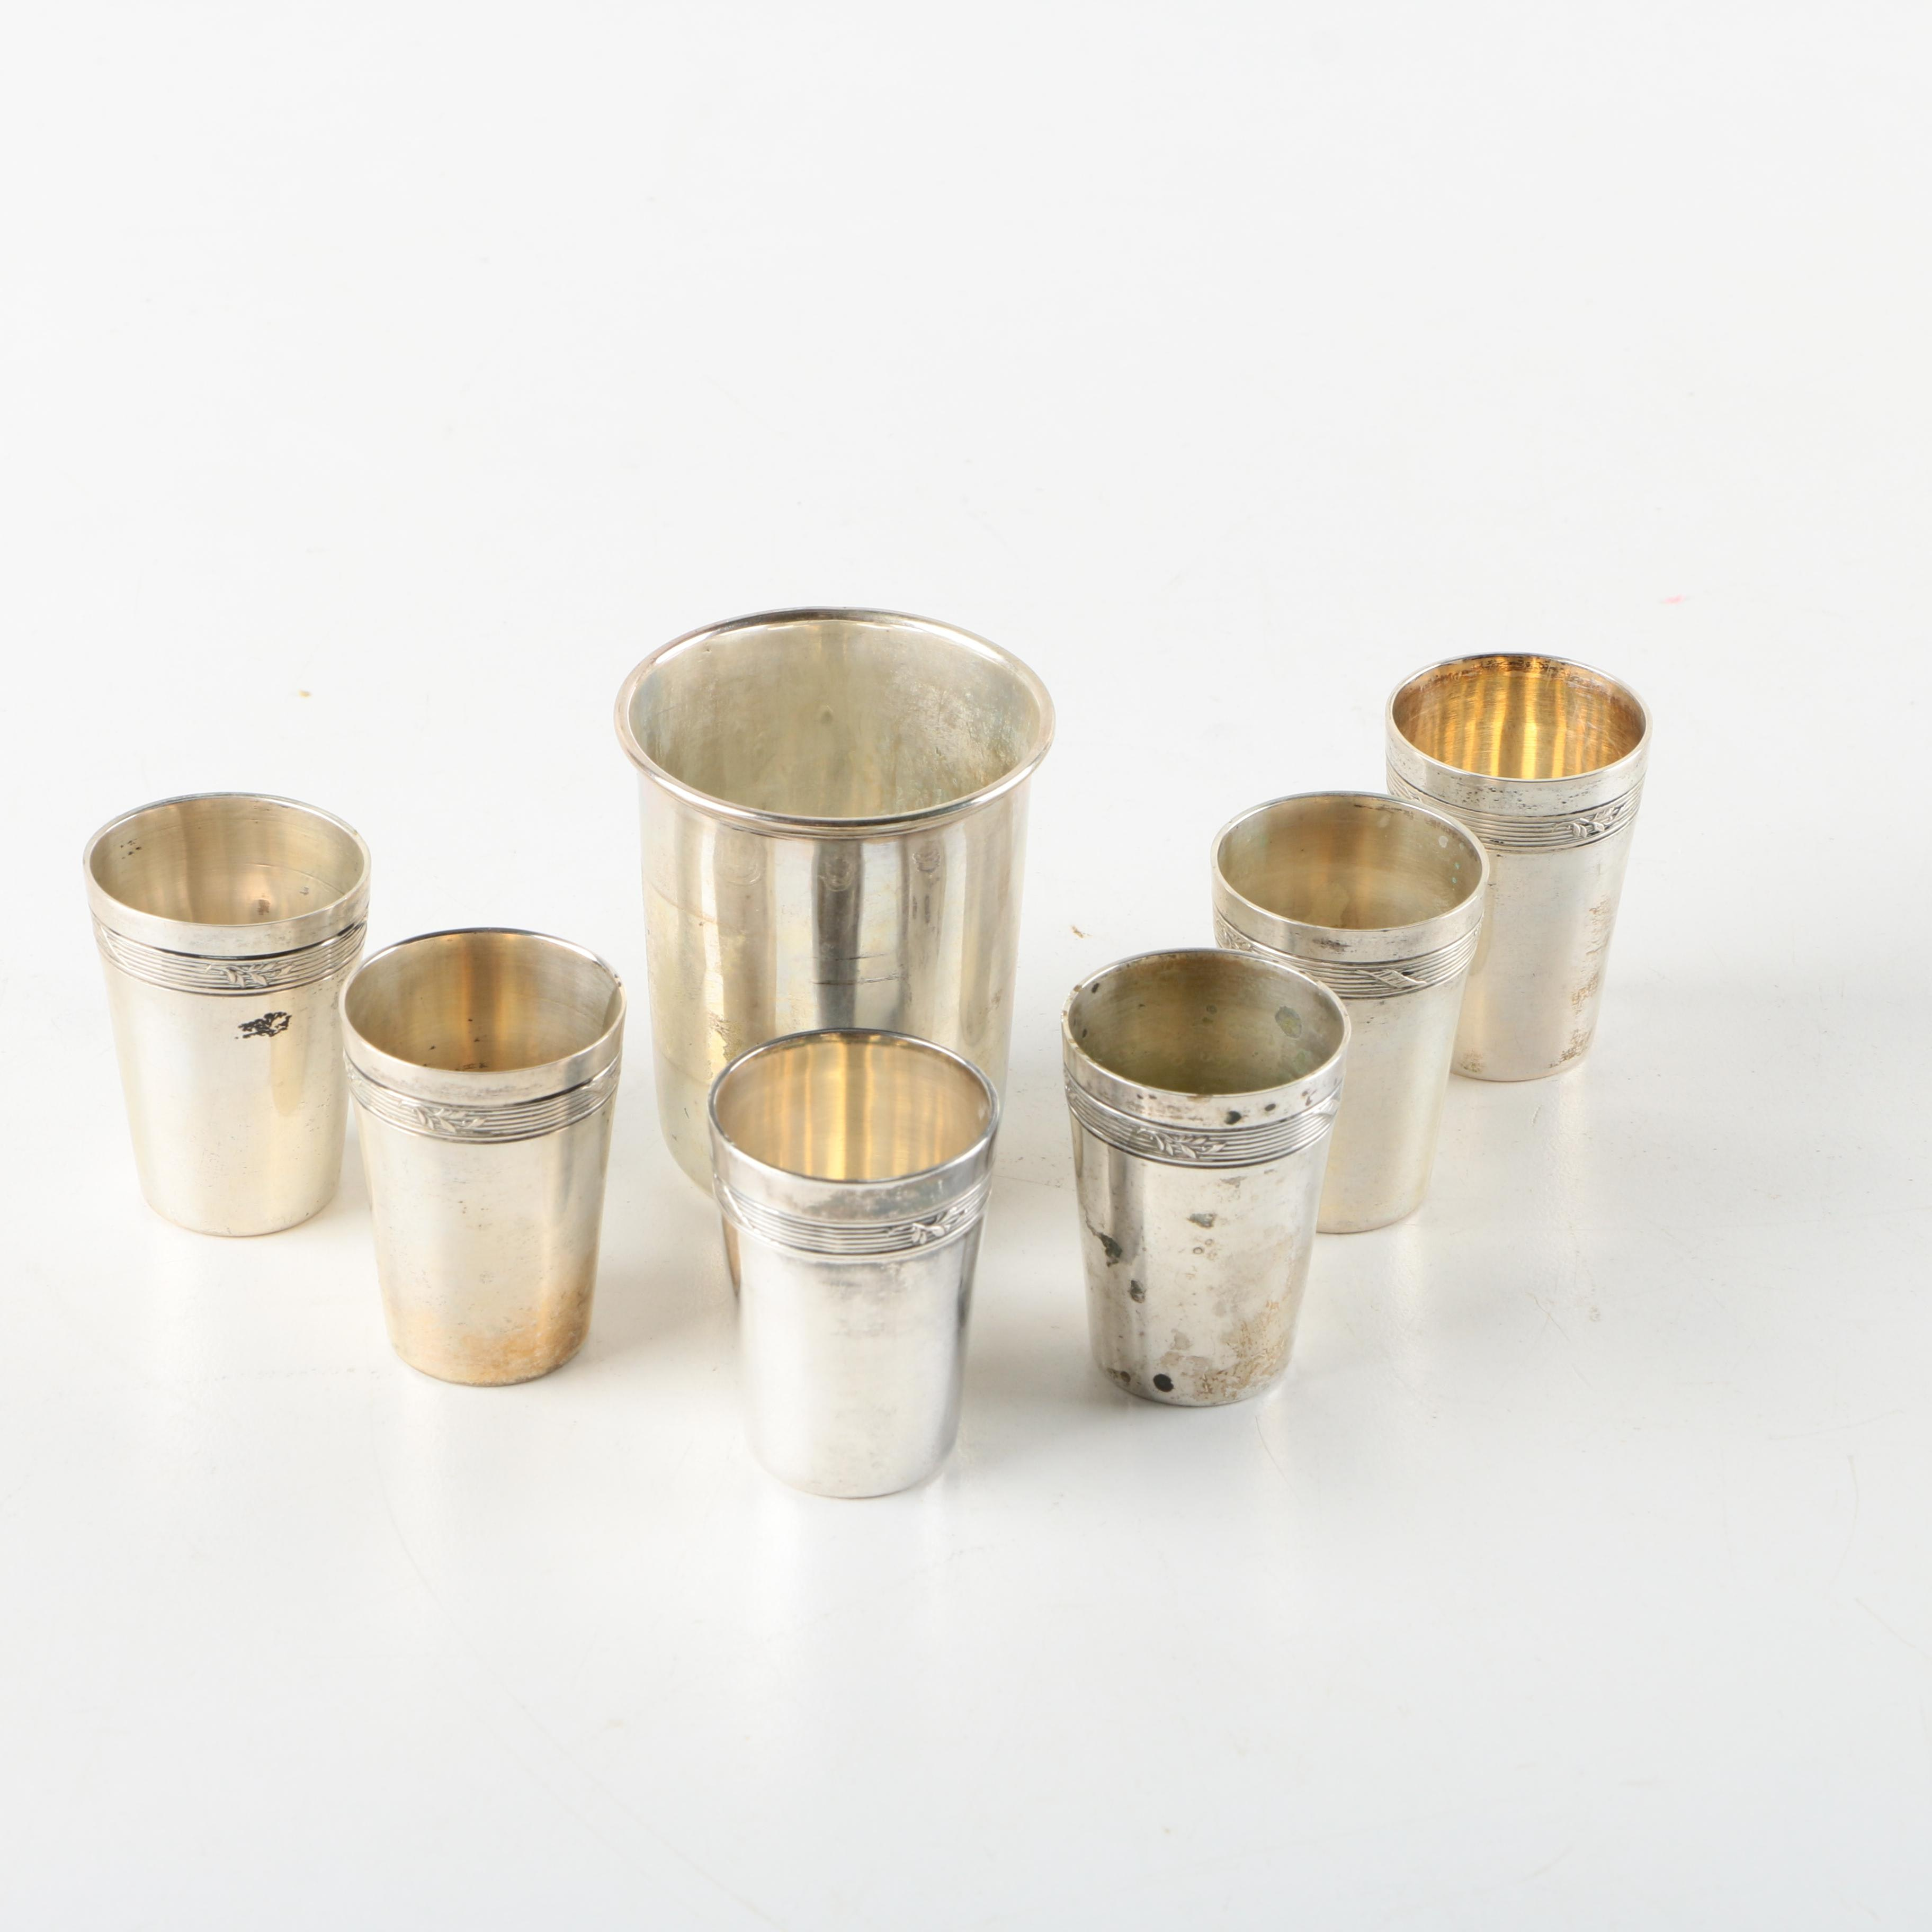 Wilhelm Binder and Other 800 Silver Cups